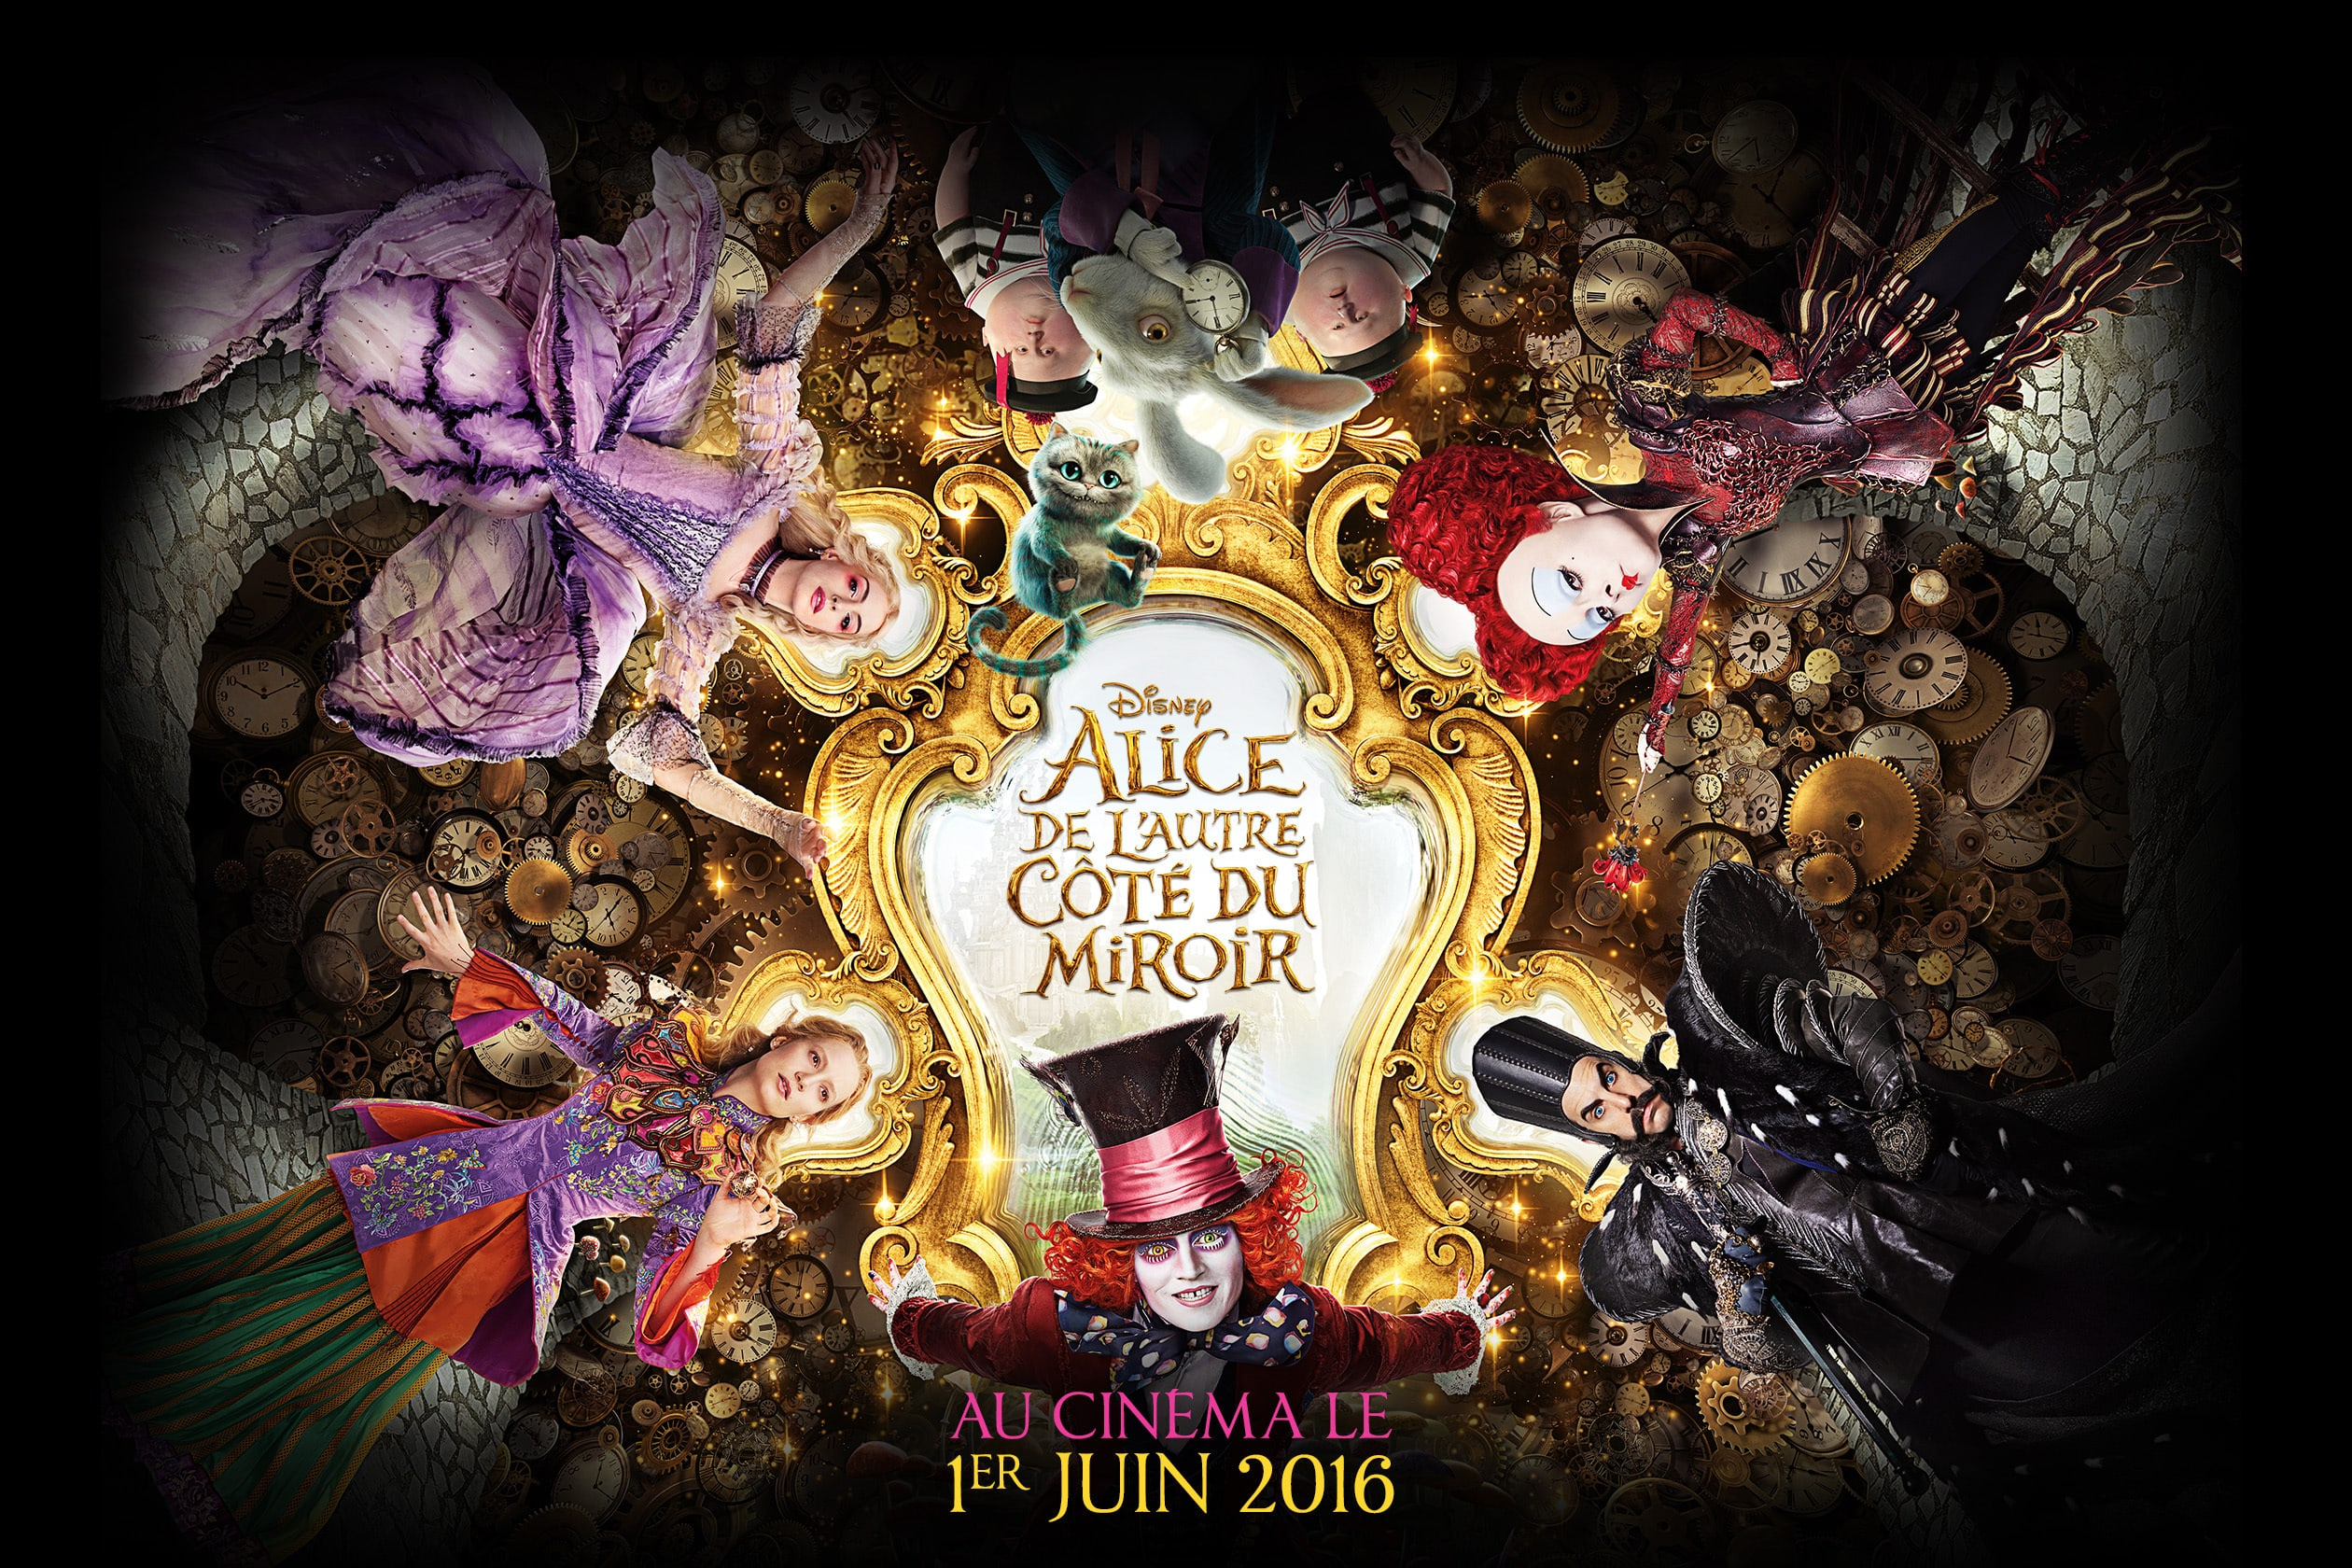 Alice Through The Looking Glass Hd Wallpapers 7wallpapers Net